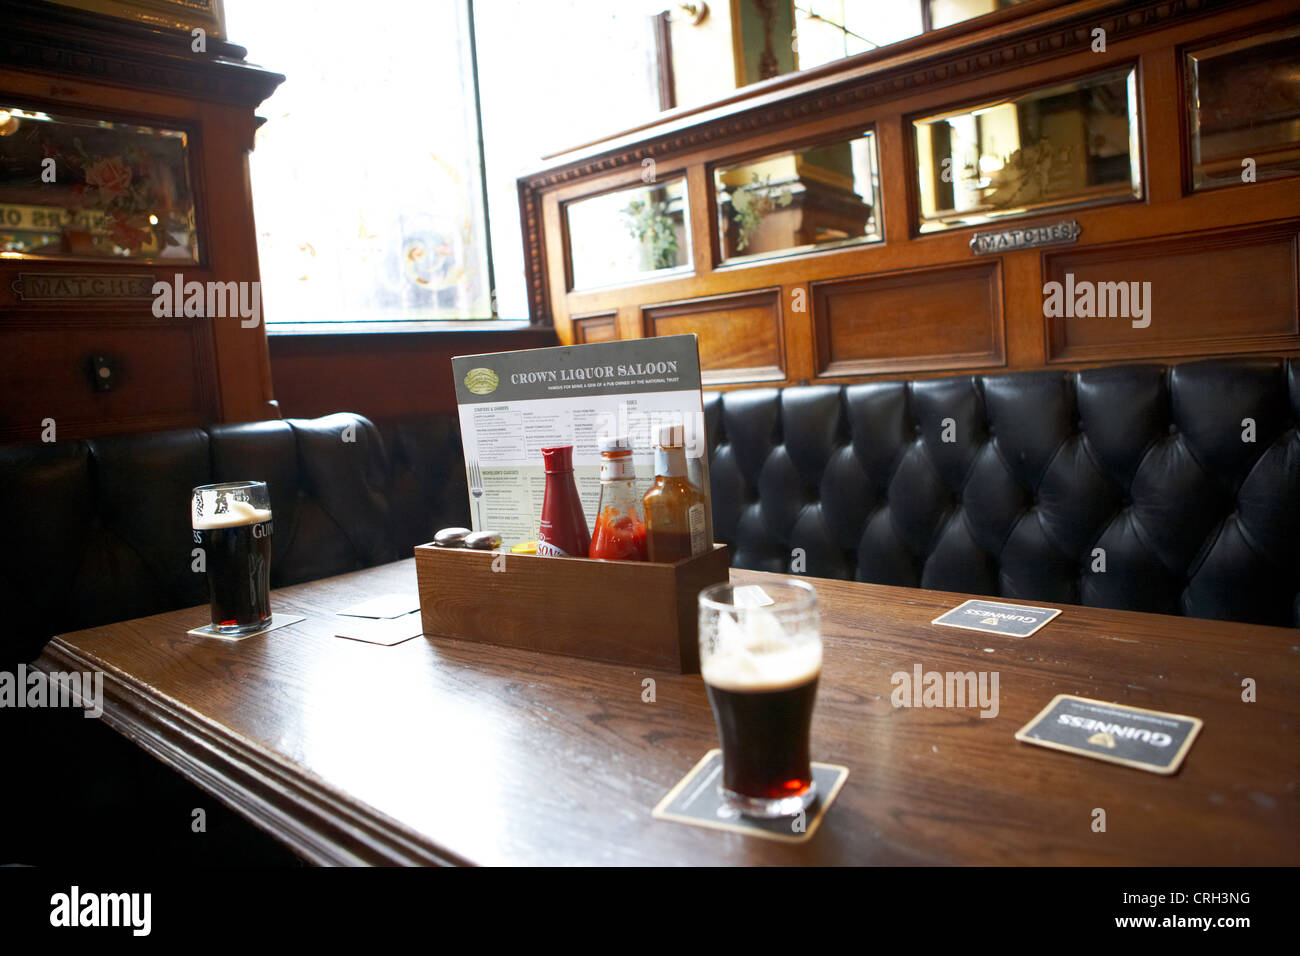 snug compartment in the interior of the crown liquor saloon bar pub in belfast northern ireland uk - Stock Image